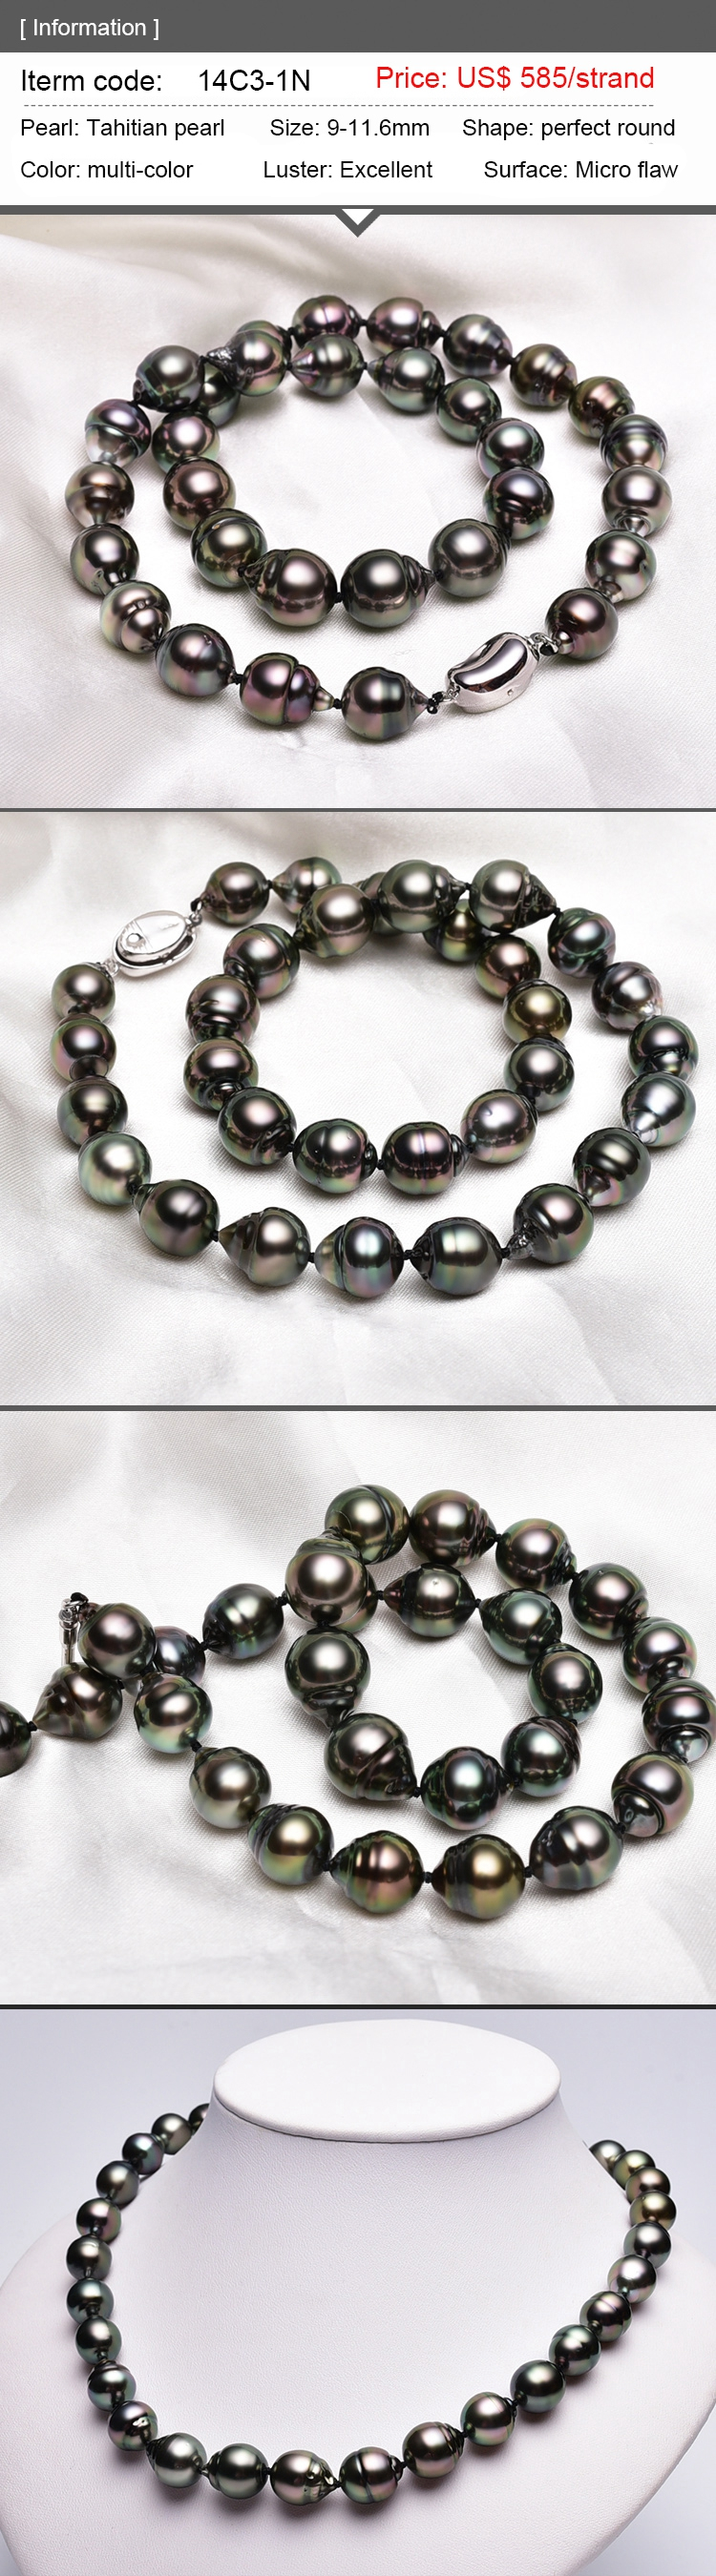 silver pearl black and sea baroque detail tahiti pearls product with from tahitian water seawater clasp necklace